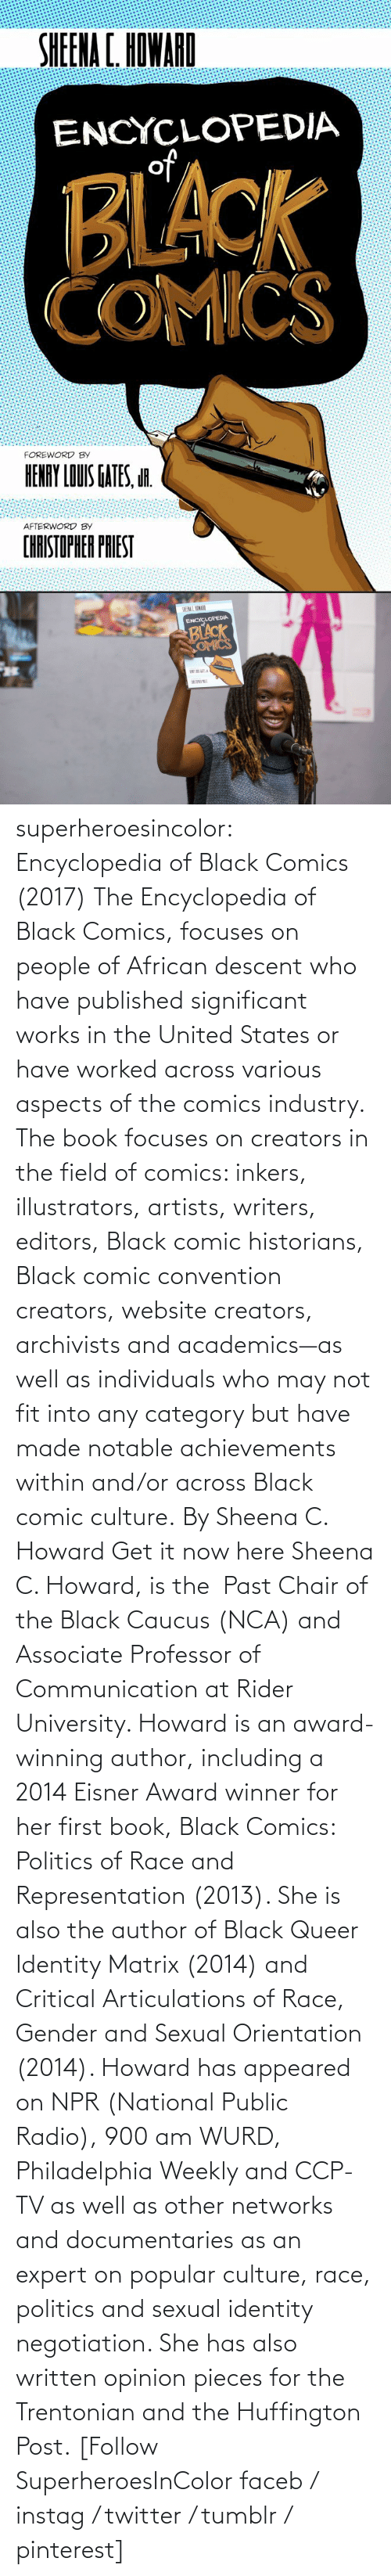 /tv/ : superheroesincolor: Encyclopedia of Black Comics (2017) The Encyclopedia of Black Comics, focuses on people of African descent who have published significant works in the United States or have worked across various aspects of the comics industry.  The book focuses on creators in the field of comics: inkers, illustrators, artists, writers, editors, Black comic historians, Black comic convention creators, website creators, archivists and academics—as well as individuals who may not fit into any category but have made notable achievements within and/or across Black comic culture. By Sheena C. Howard Get it now here  Sheena C. Howard, is the  Past Chair of the Black Caucus (NCA) and Associate Professor of Communication at Rider University. Howard is an award-winning author, including a 2014 Eisner Award winner for her first book, Black Comics: Politics of Race and Representation (2013). She is also the author of Black Queer Identity Matrix (2014) and Critical Articulations of Race, Gender and Sexual Orientation (2014). Howard has appeared on NPR (National Public Radio), 900 am WURD, Philadelphia Weekly and CCP-TV as well as other networks and documentaries as an expert on popular culture, race, politics and sexual identity negotiation. She has also written opinion pieces for the Trentonian and the Huffington Post.   [Follow SuperheroesInColor faceb / instag / twitter / tumblr / pinterest]